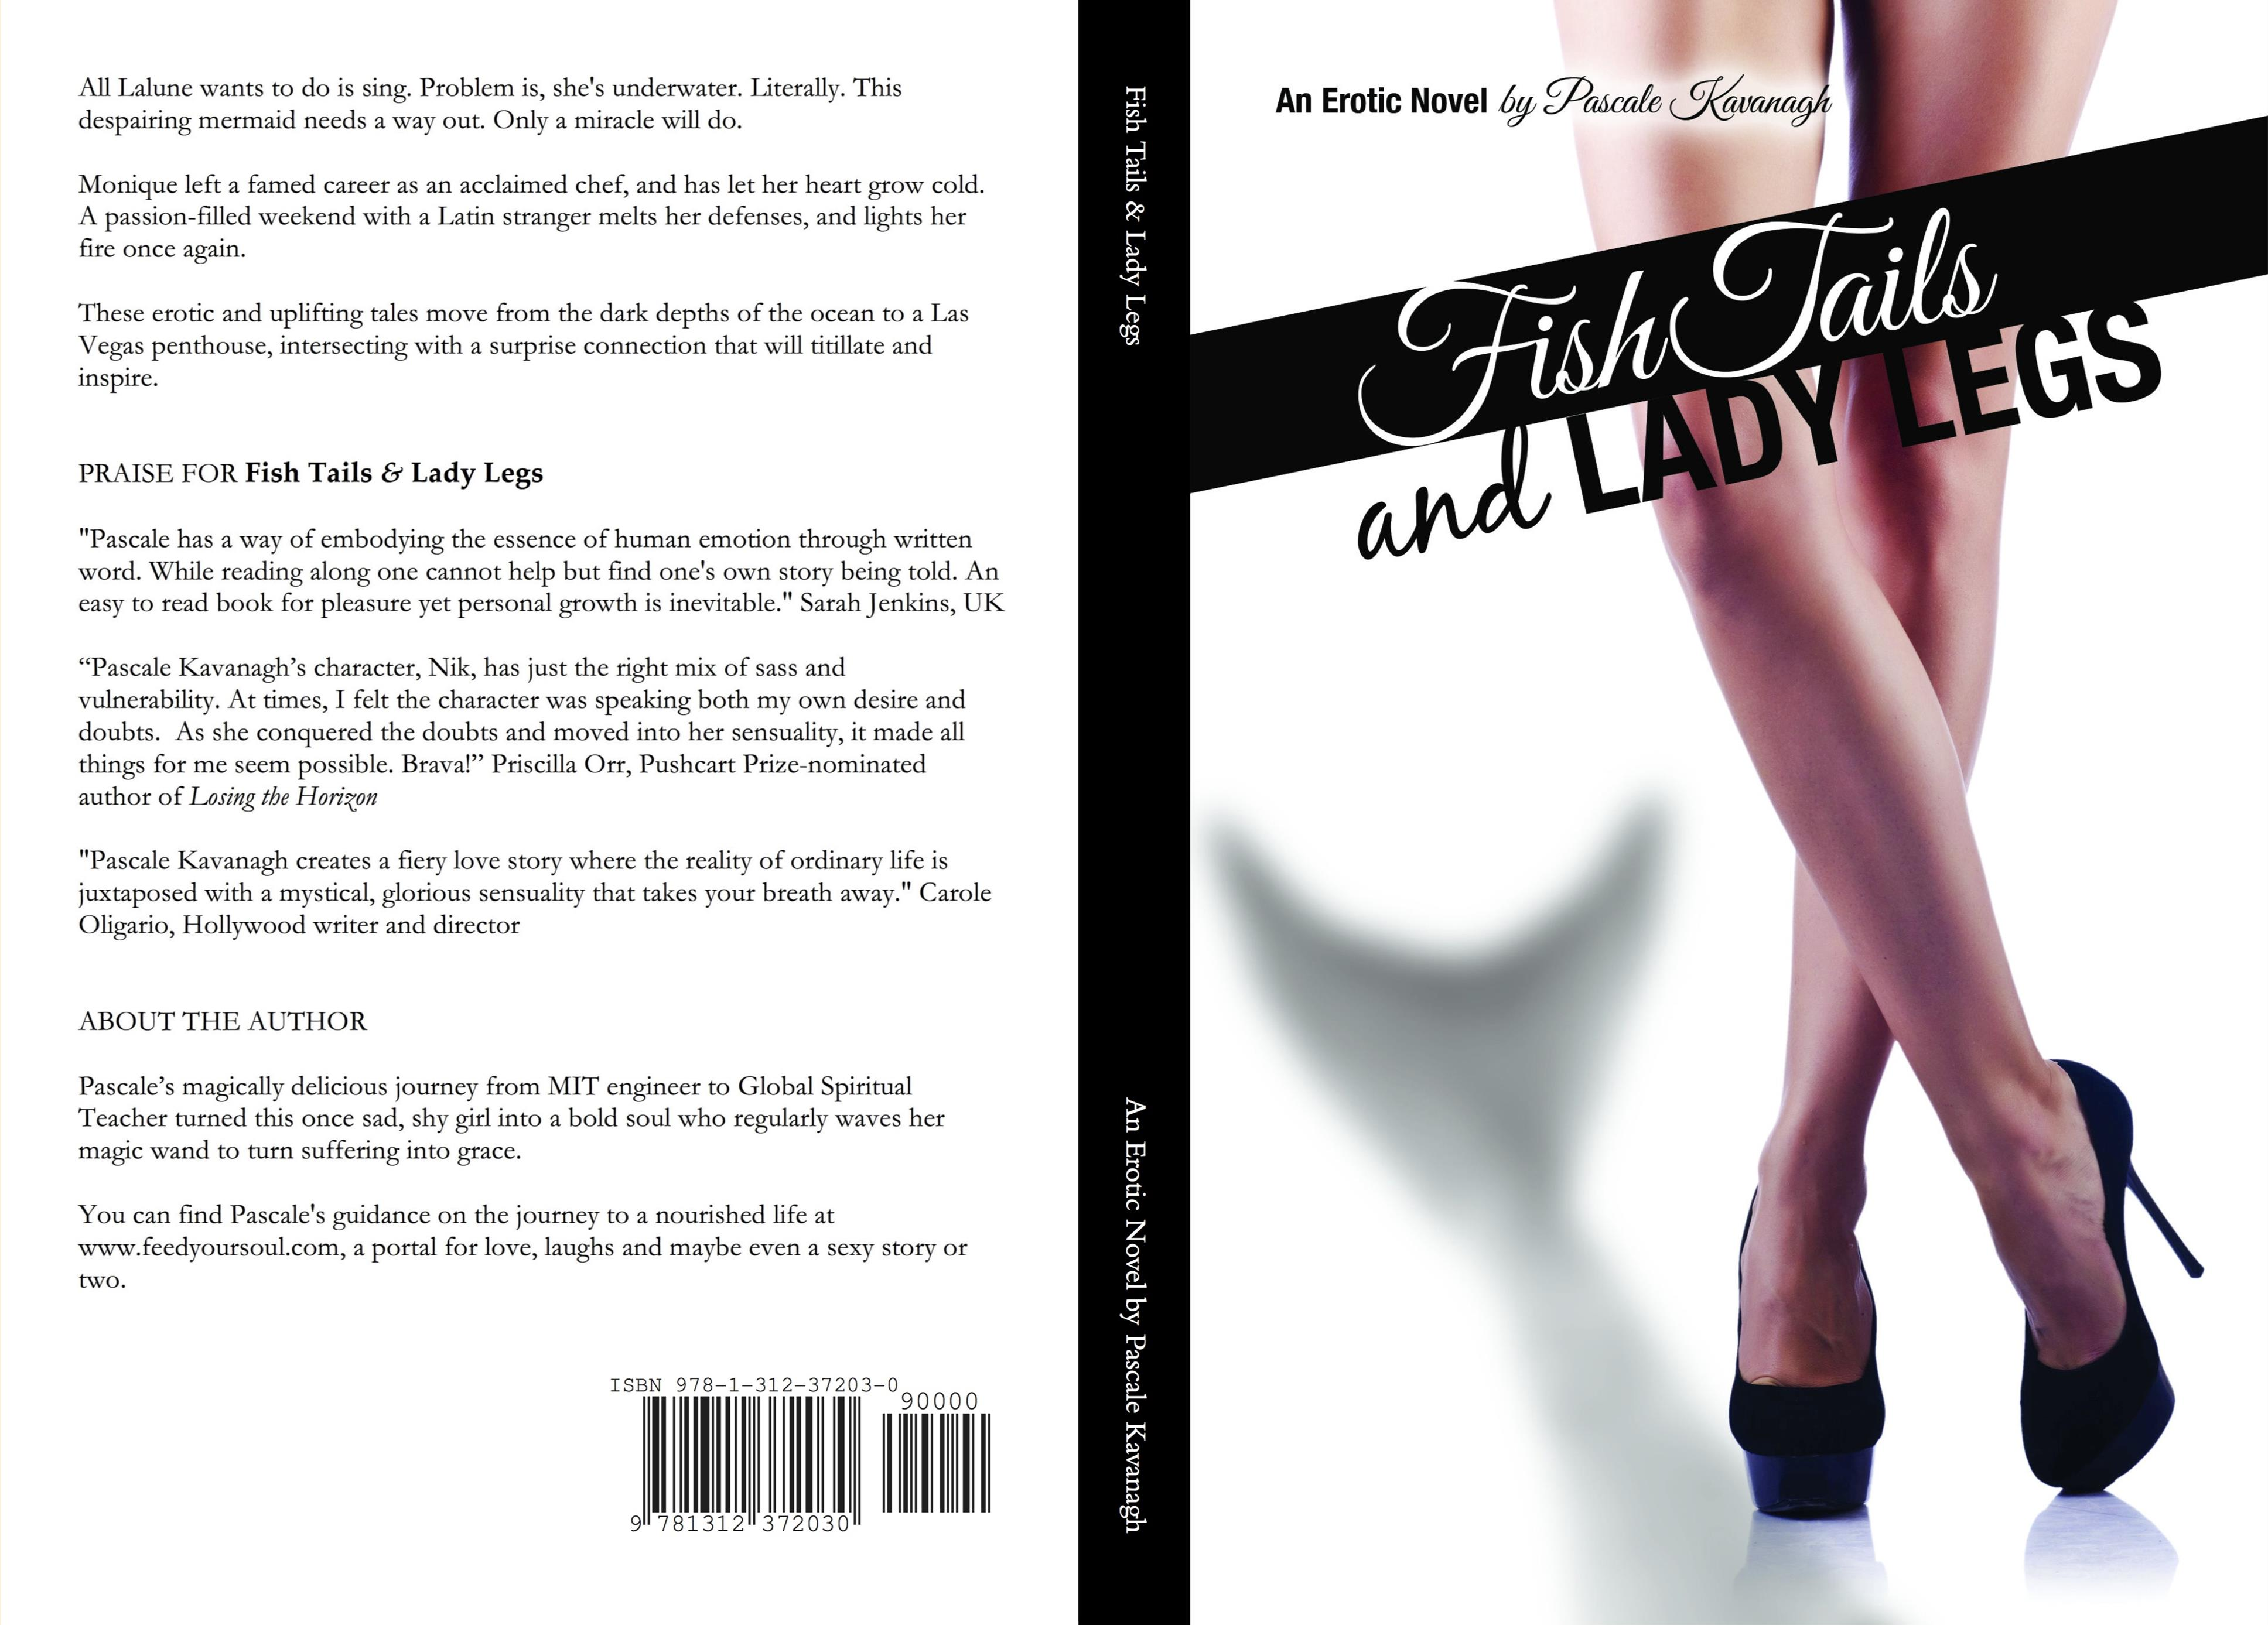 Fish Tails & Lady Legs cover image